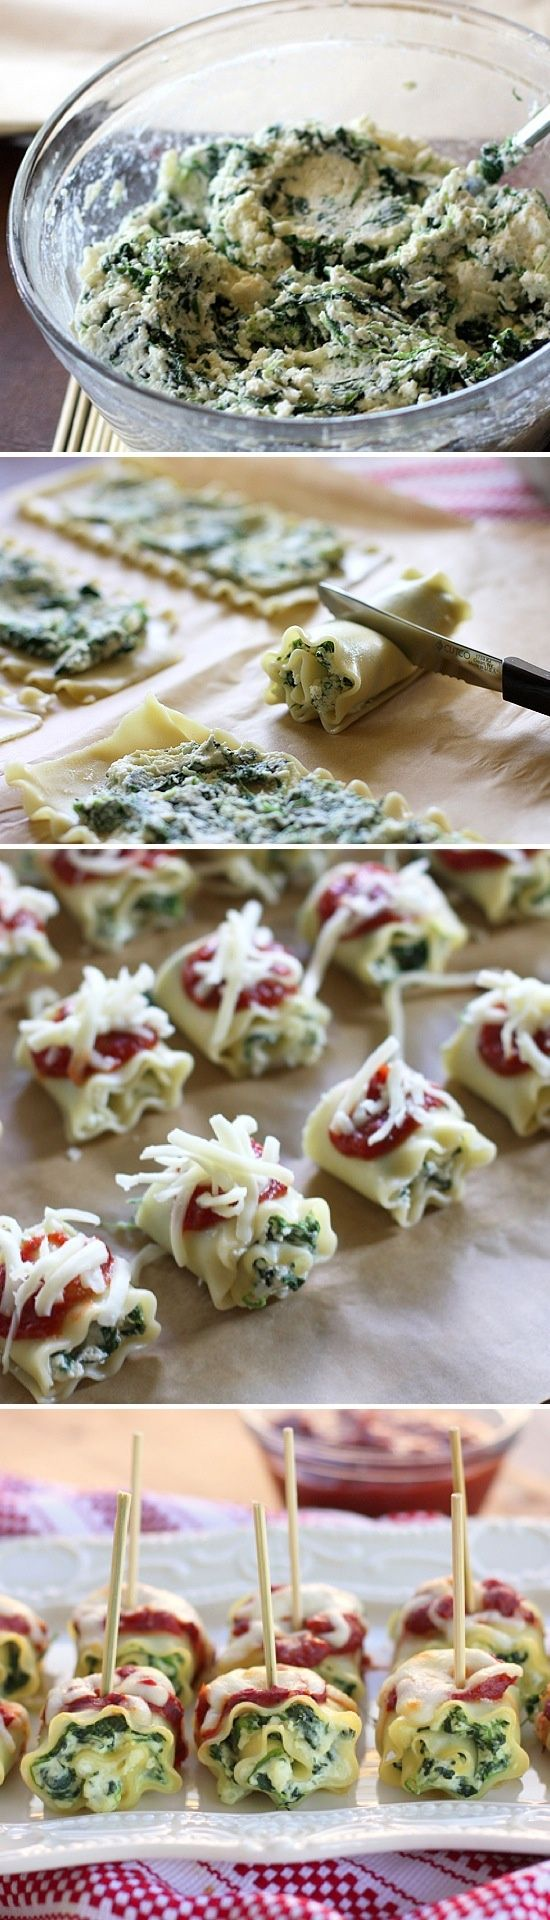 Mini Spinach Lasagna Roll-Ups: Ricotta, salt, pepper, spinach, Parmesan, and cream or bechamel sauce. Cute for appetizers!